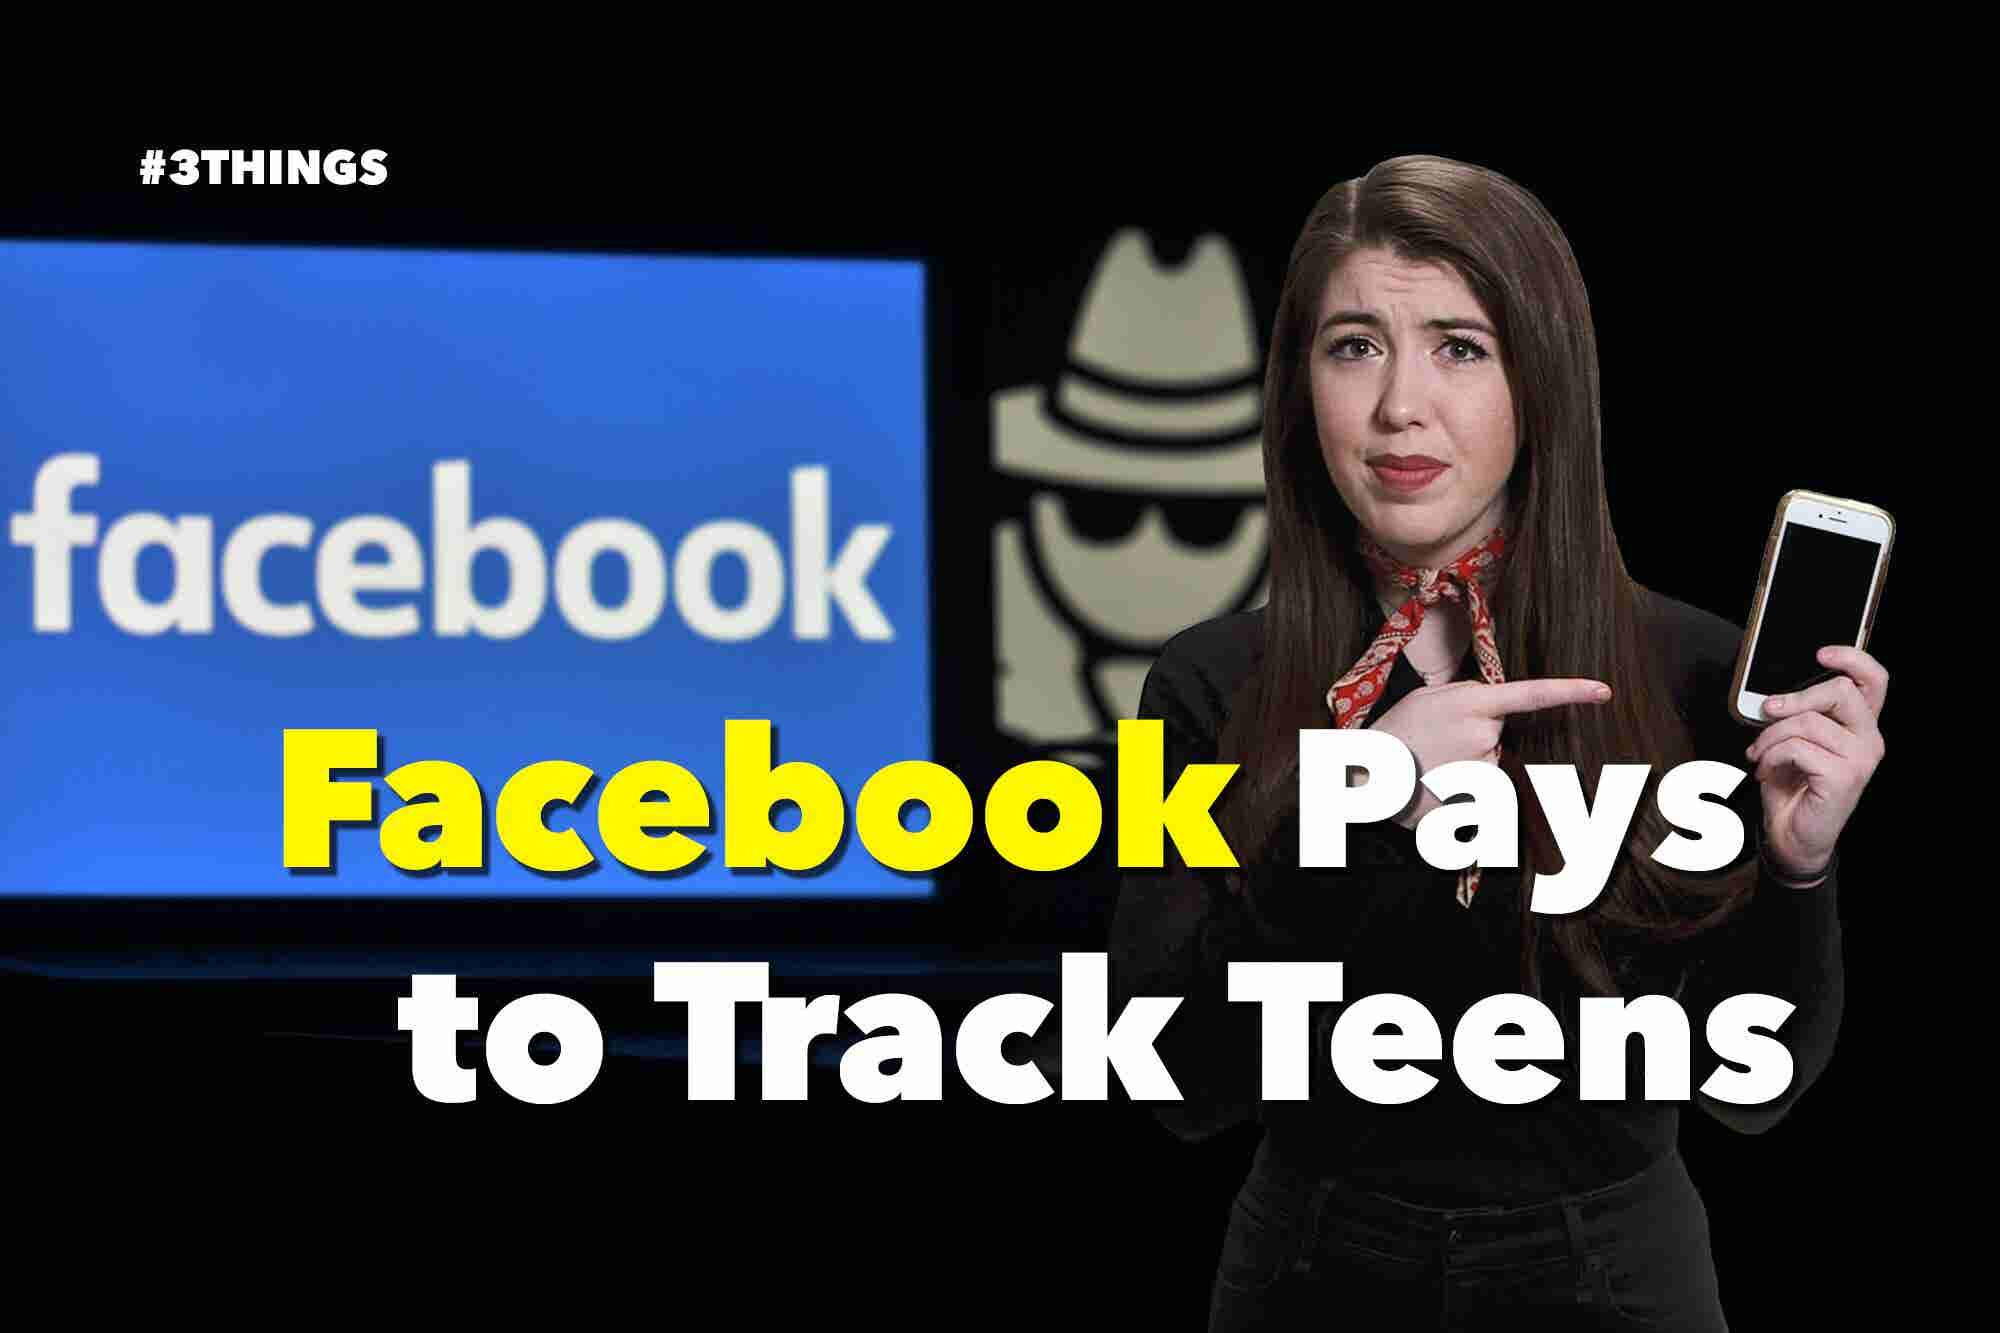 Facebook Pays to Track People, Cryptocurrency Scams Cost Users $1.7 Billion and Elon Musk's Jet Travel (60-Second Video)